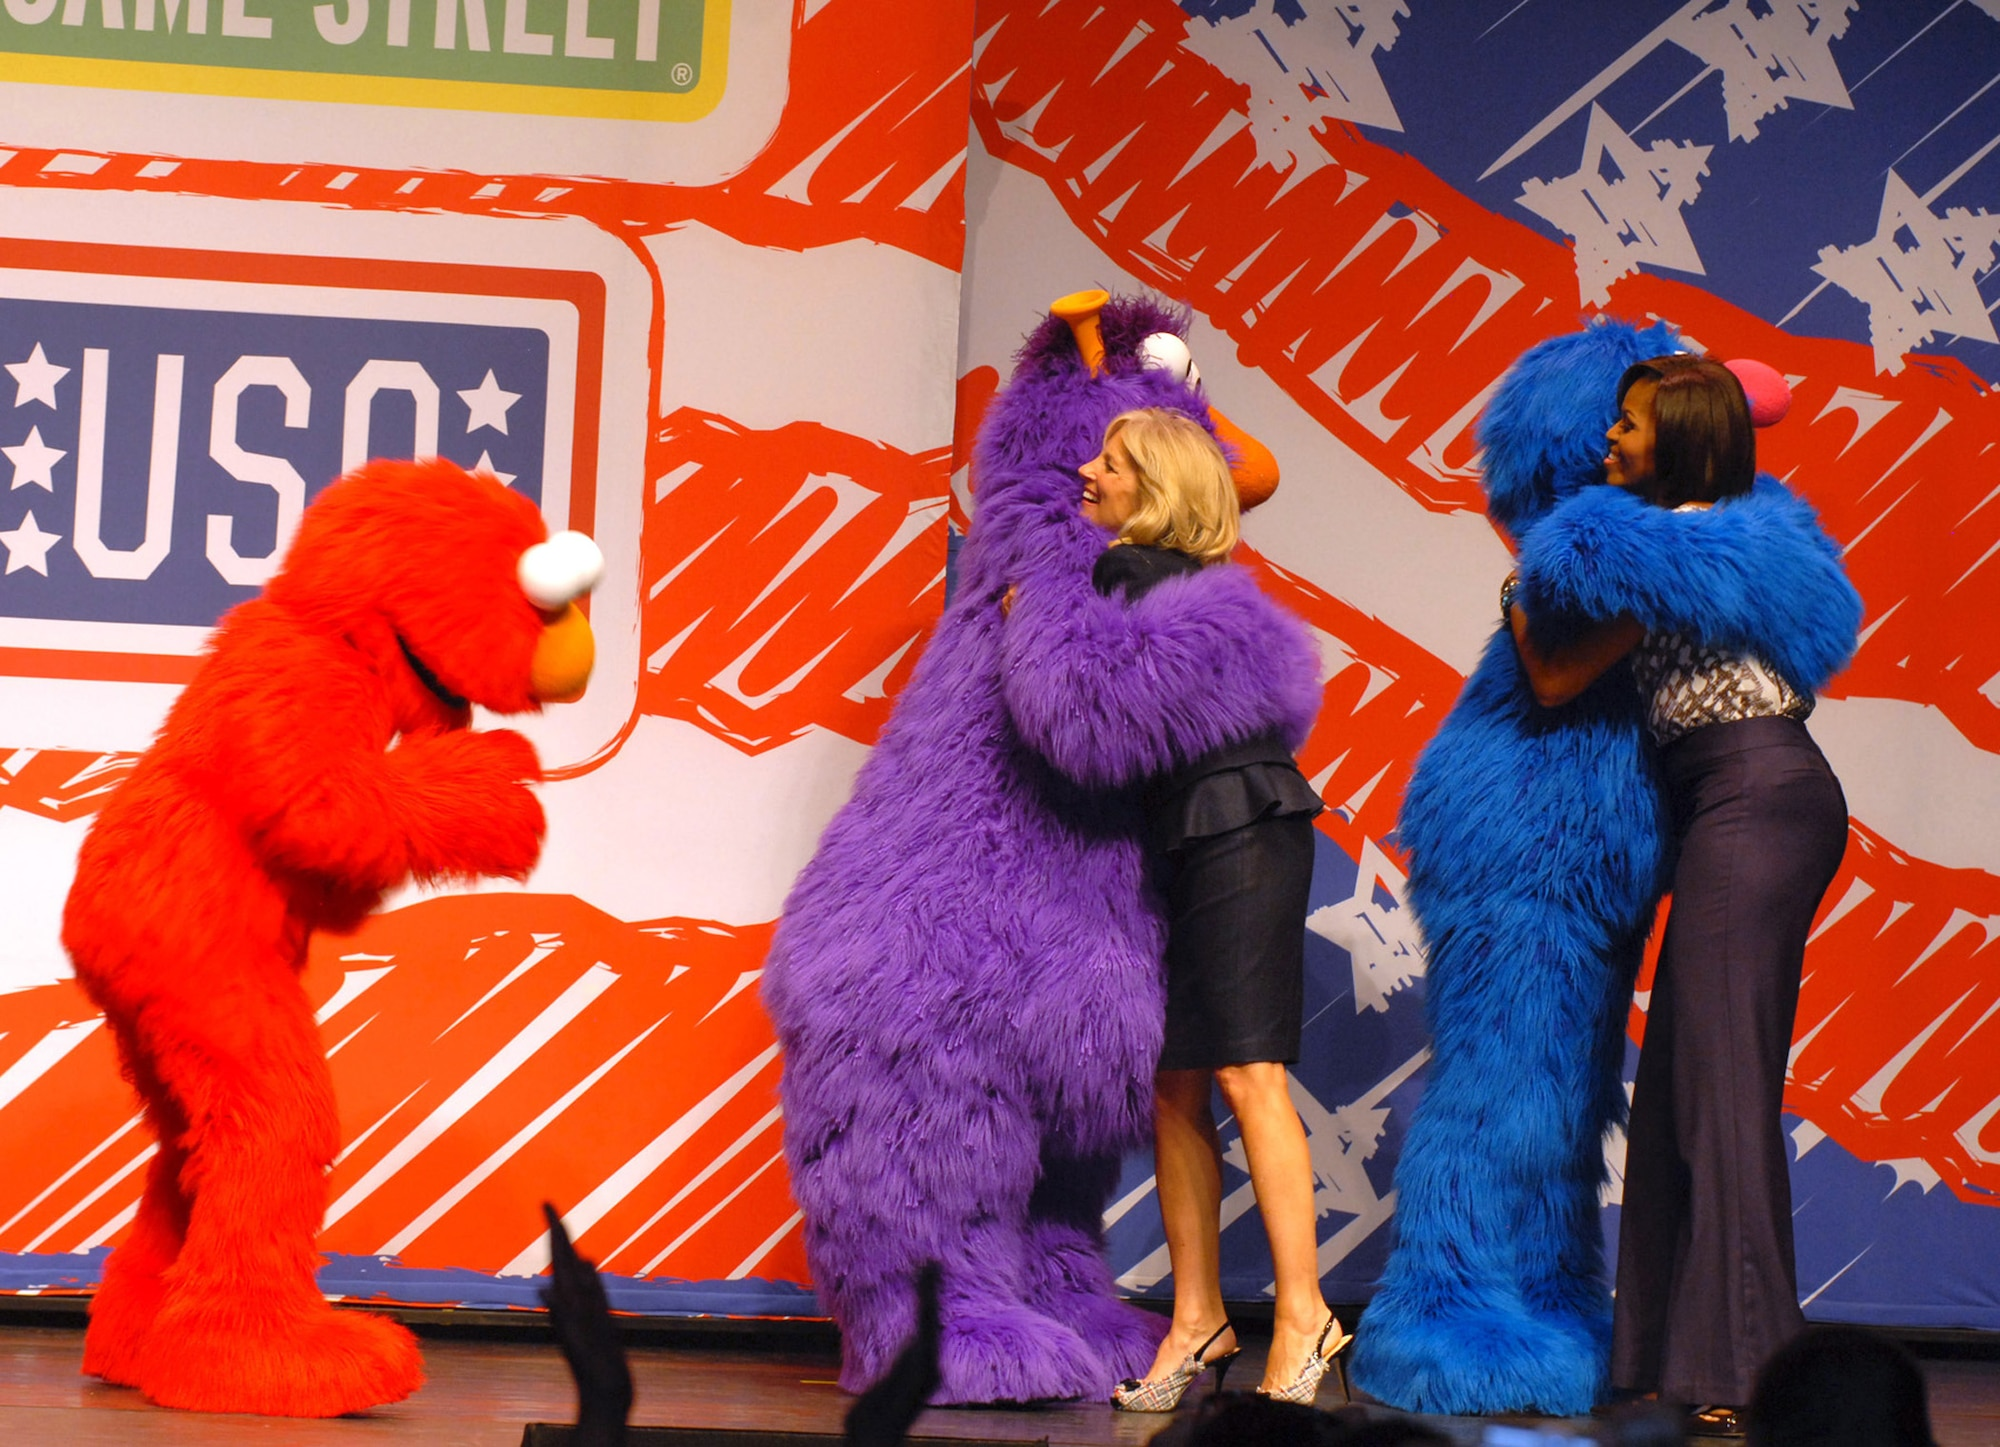 """First lady Michelle Obama and Dr. Jill Biden greet Sesame Street Muppets Telly and Grover while Elmo waits for his hug during a """"Joining Forces"""" community event April 14, 2011, in Columbus, Ohio. The event also kicked off the Sesame Street and USO Experience for Military Families, a free traveling tour exclusively for military families. (Defense Department photo/Elaine Sanchez)"""